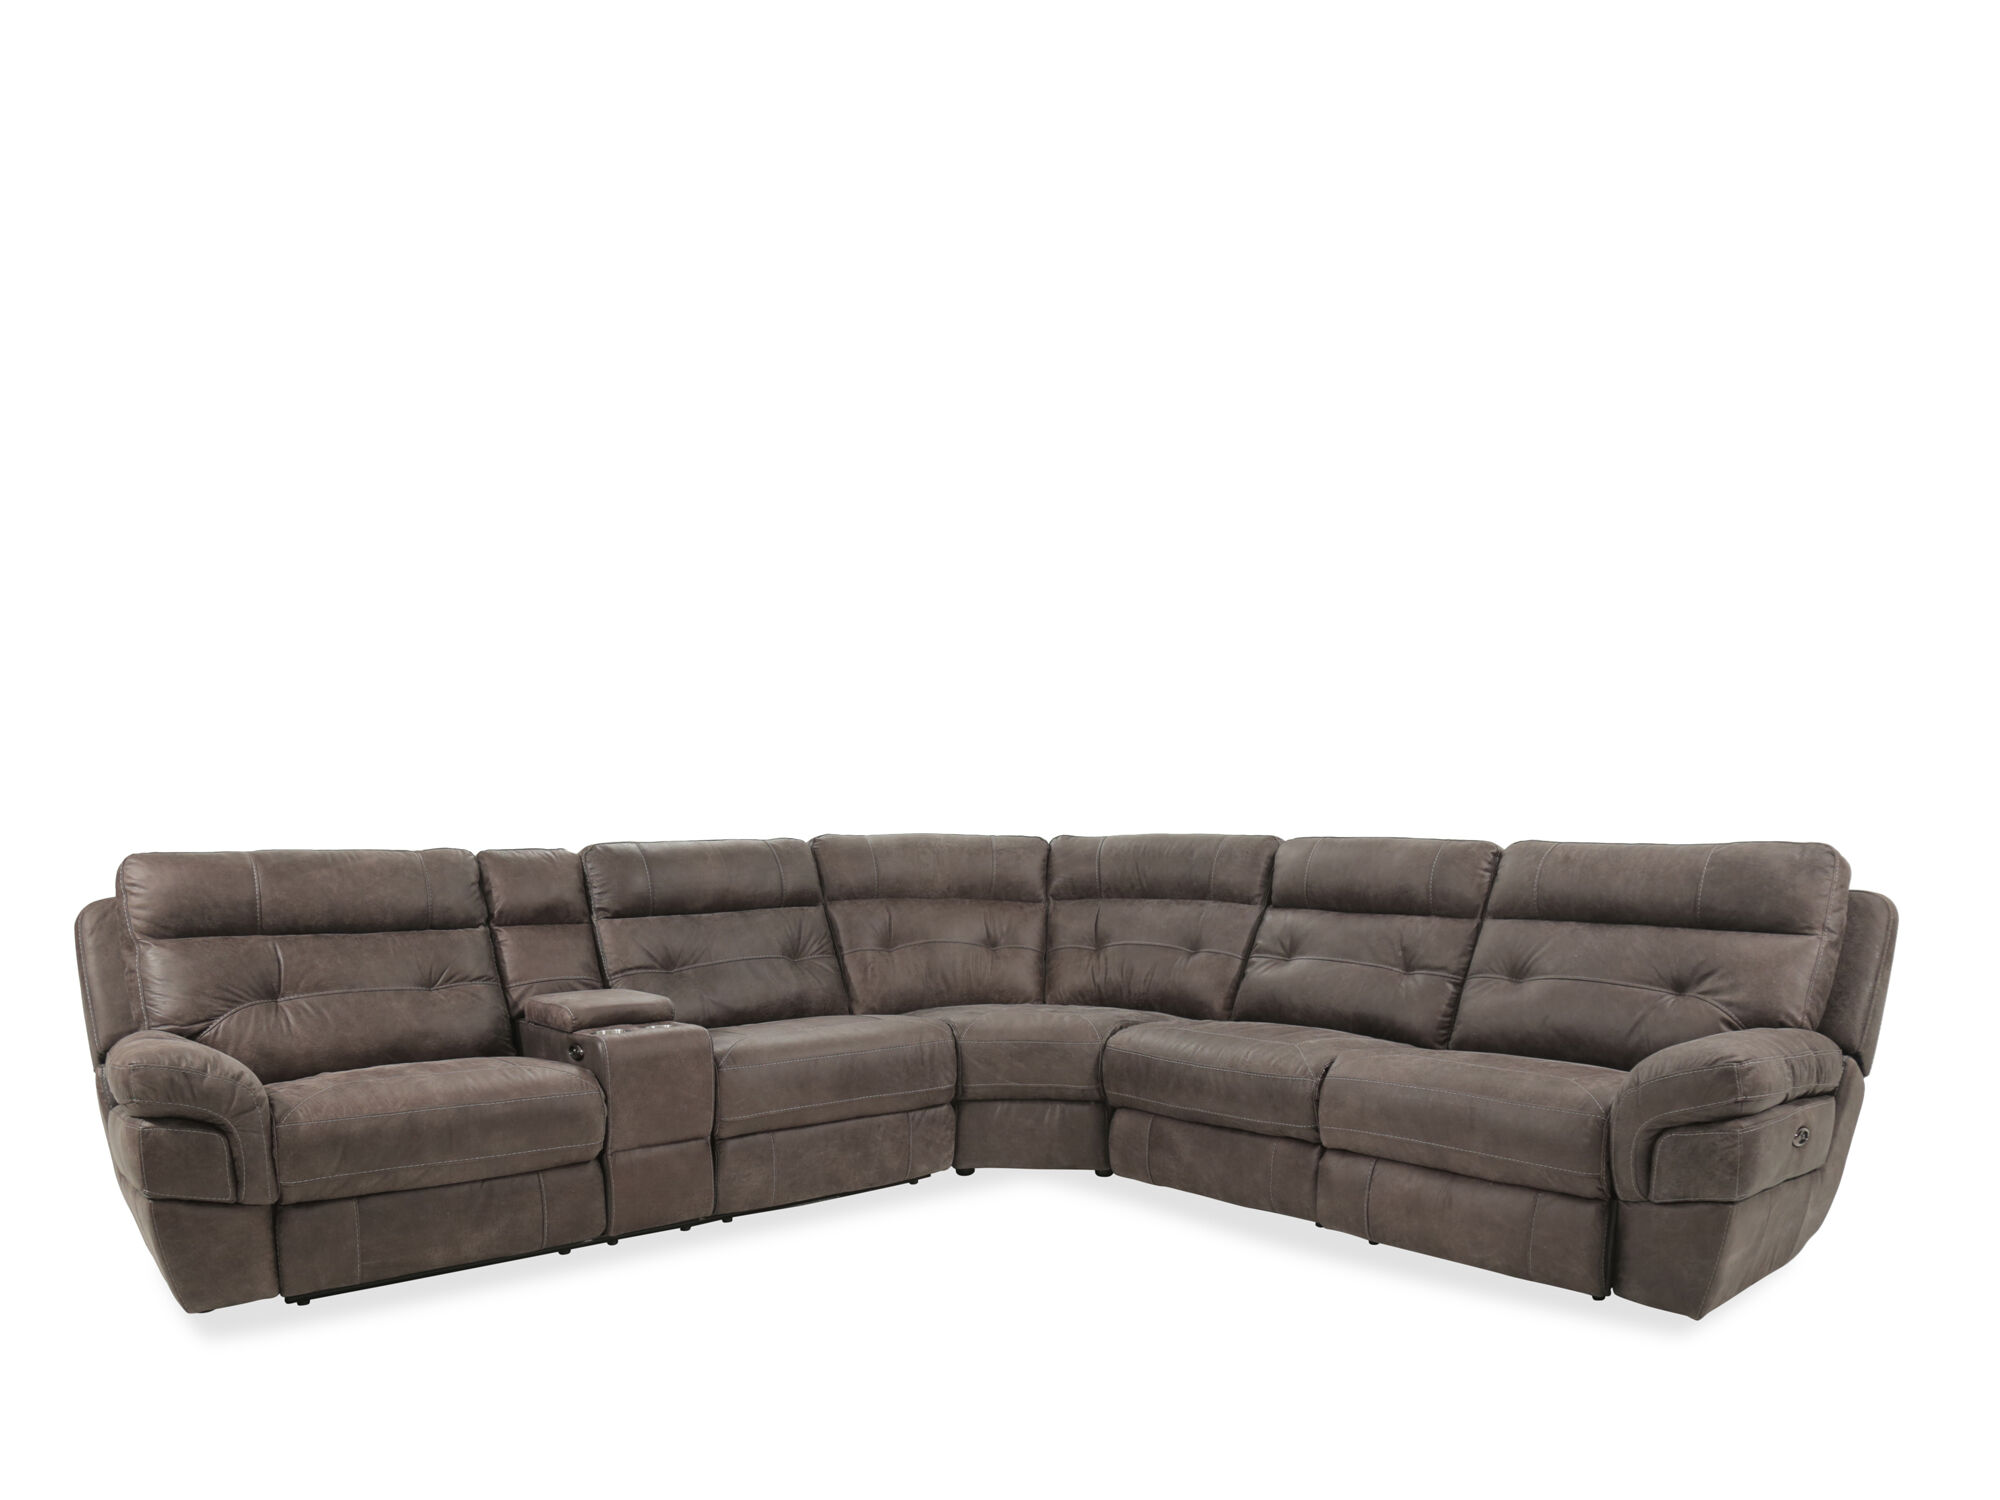 Verona Outback Morro Sectional  sc 1 st  Mathis Brothers : verona sectional - Sectionals, Sofas & Couches